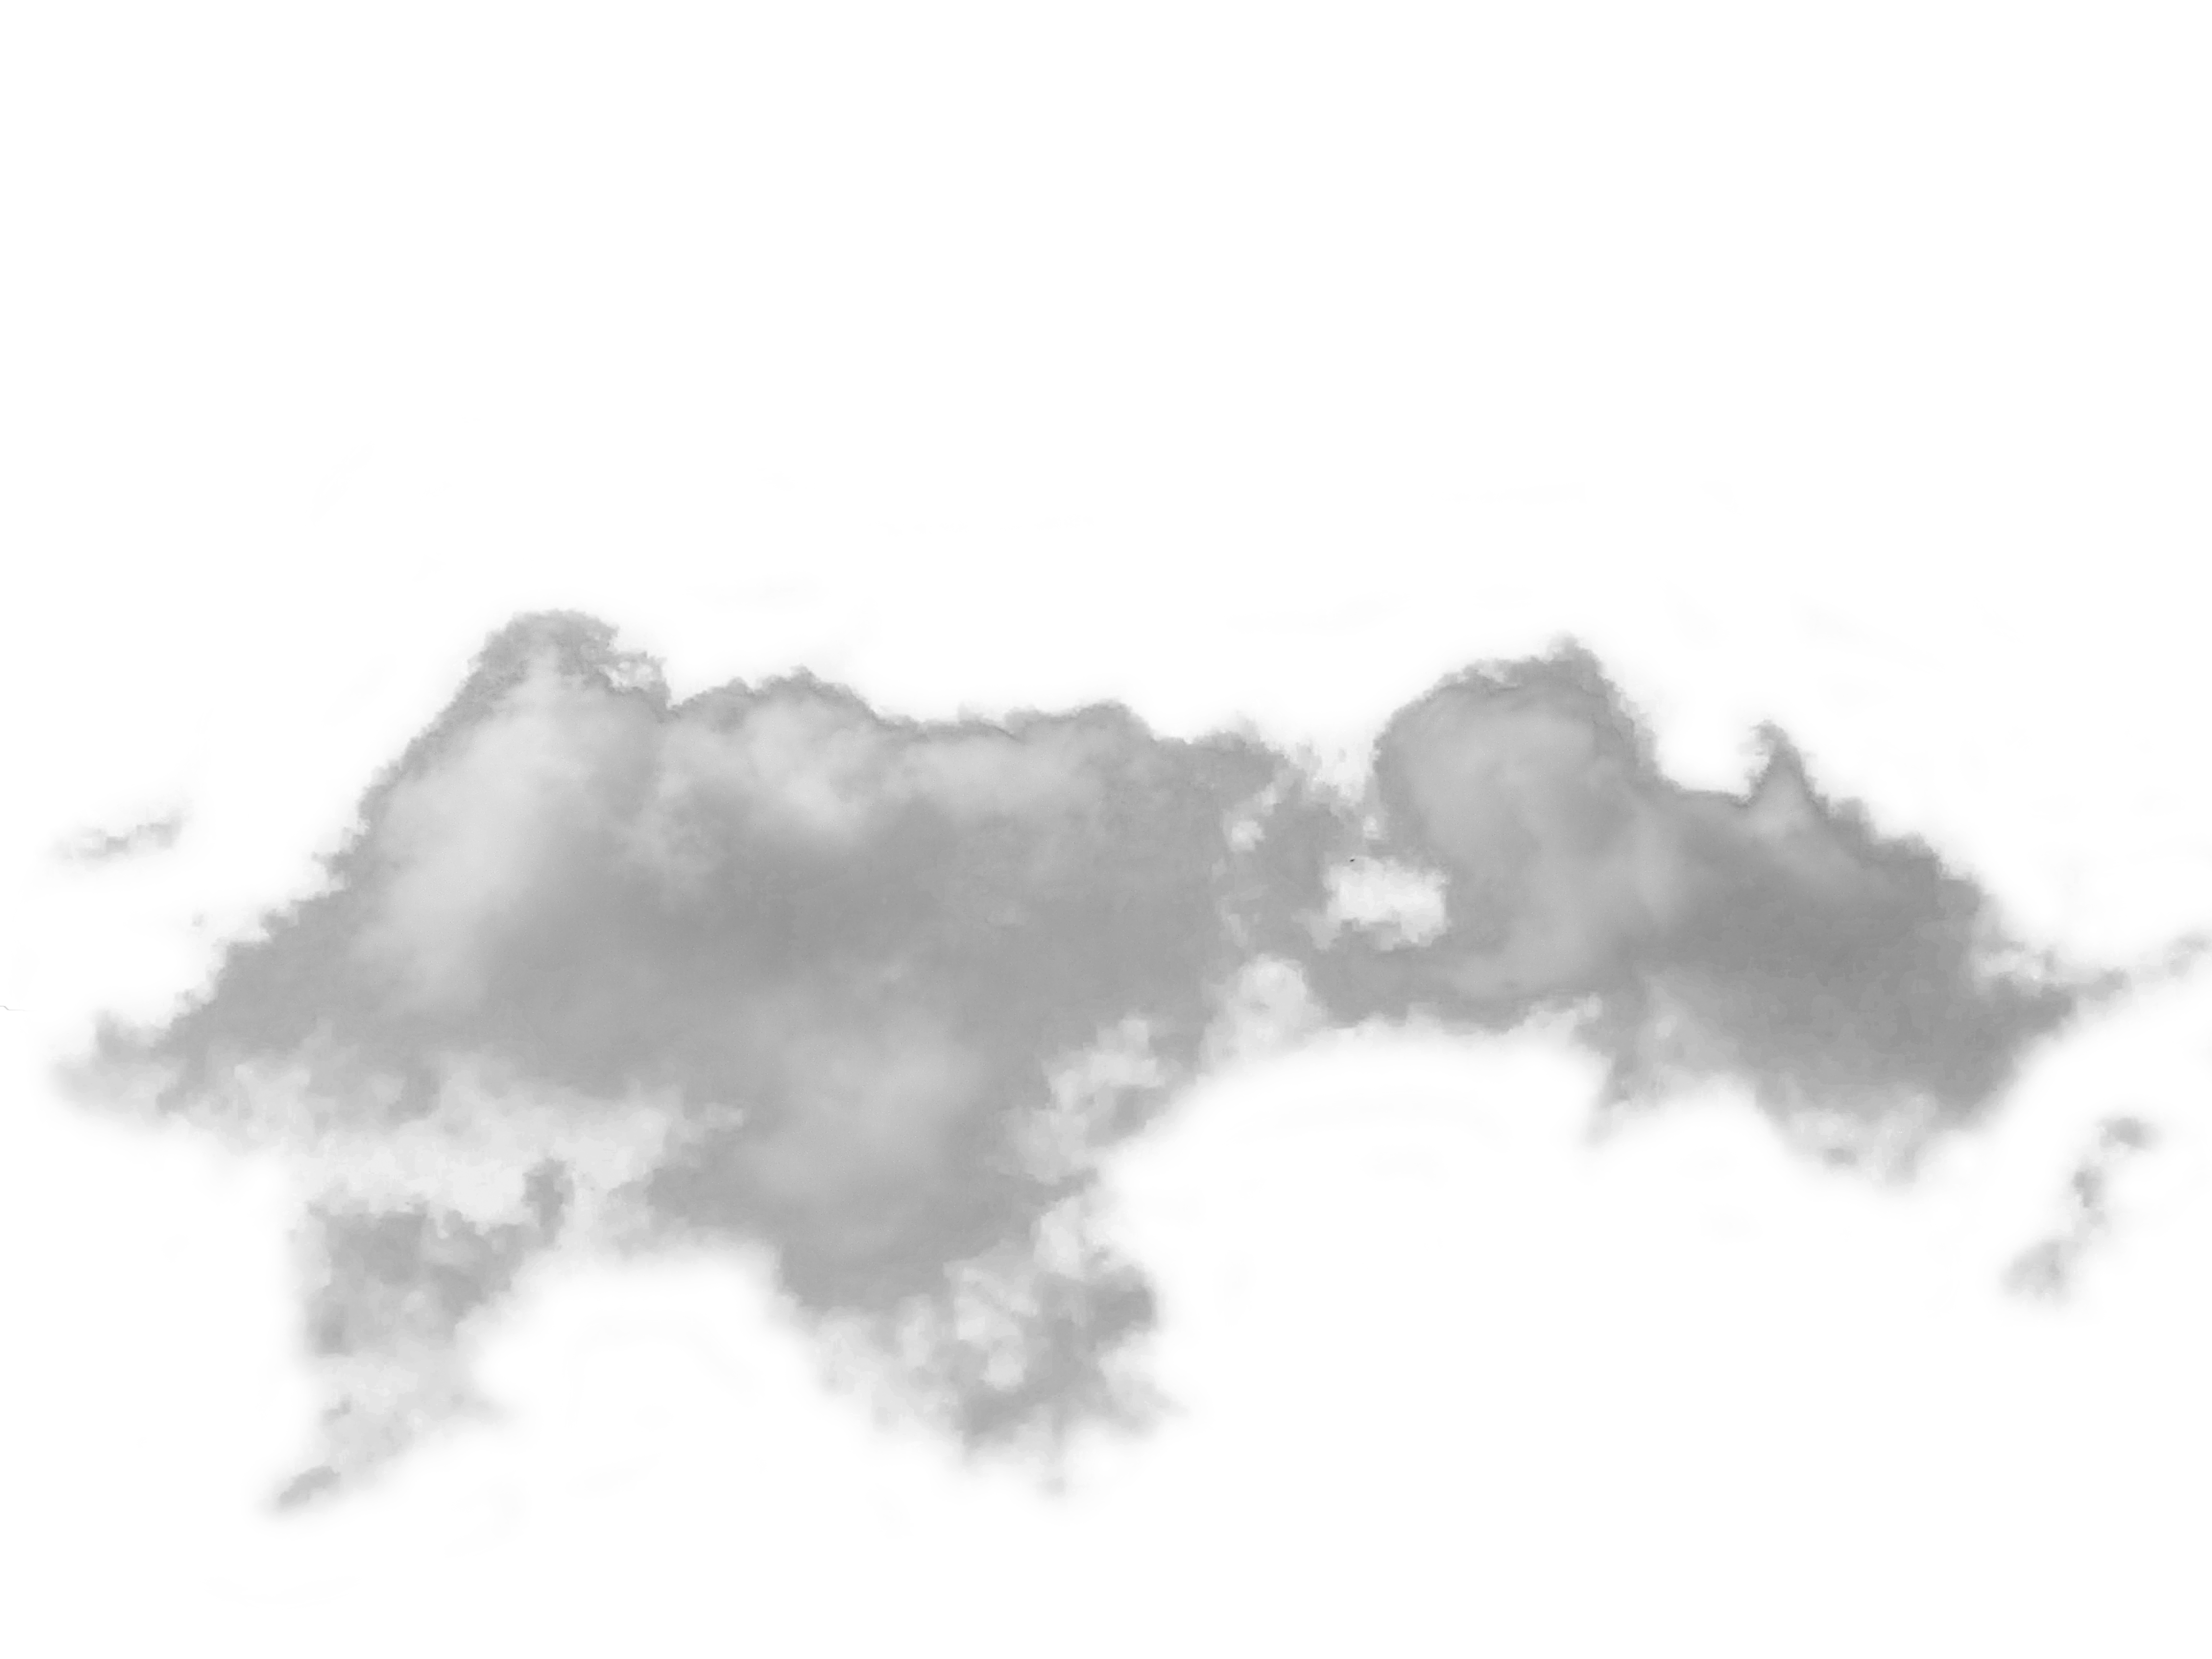 Night clouds png. Cloud by altair e